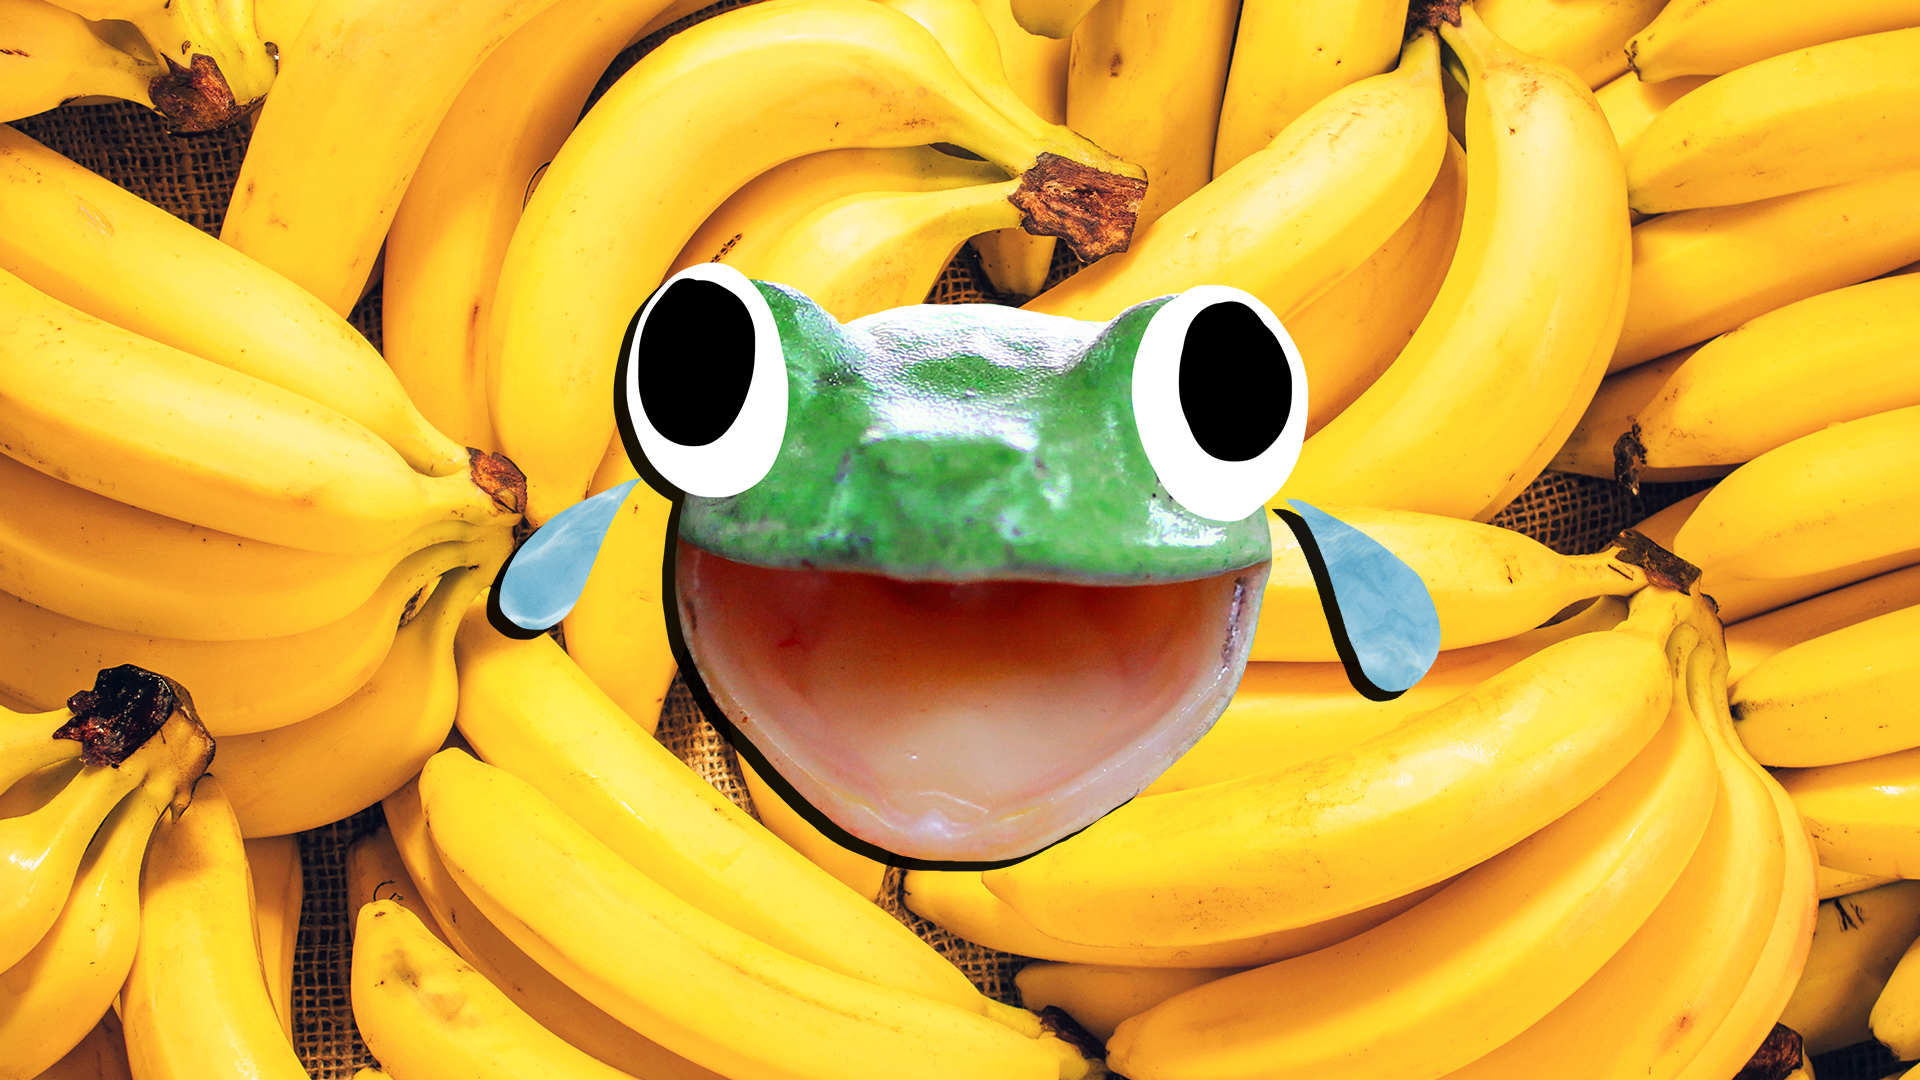 A laughing green frog in front of lots of bananas